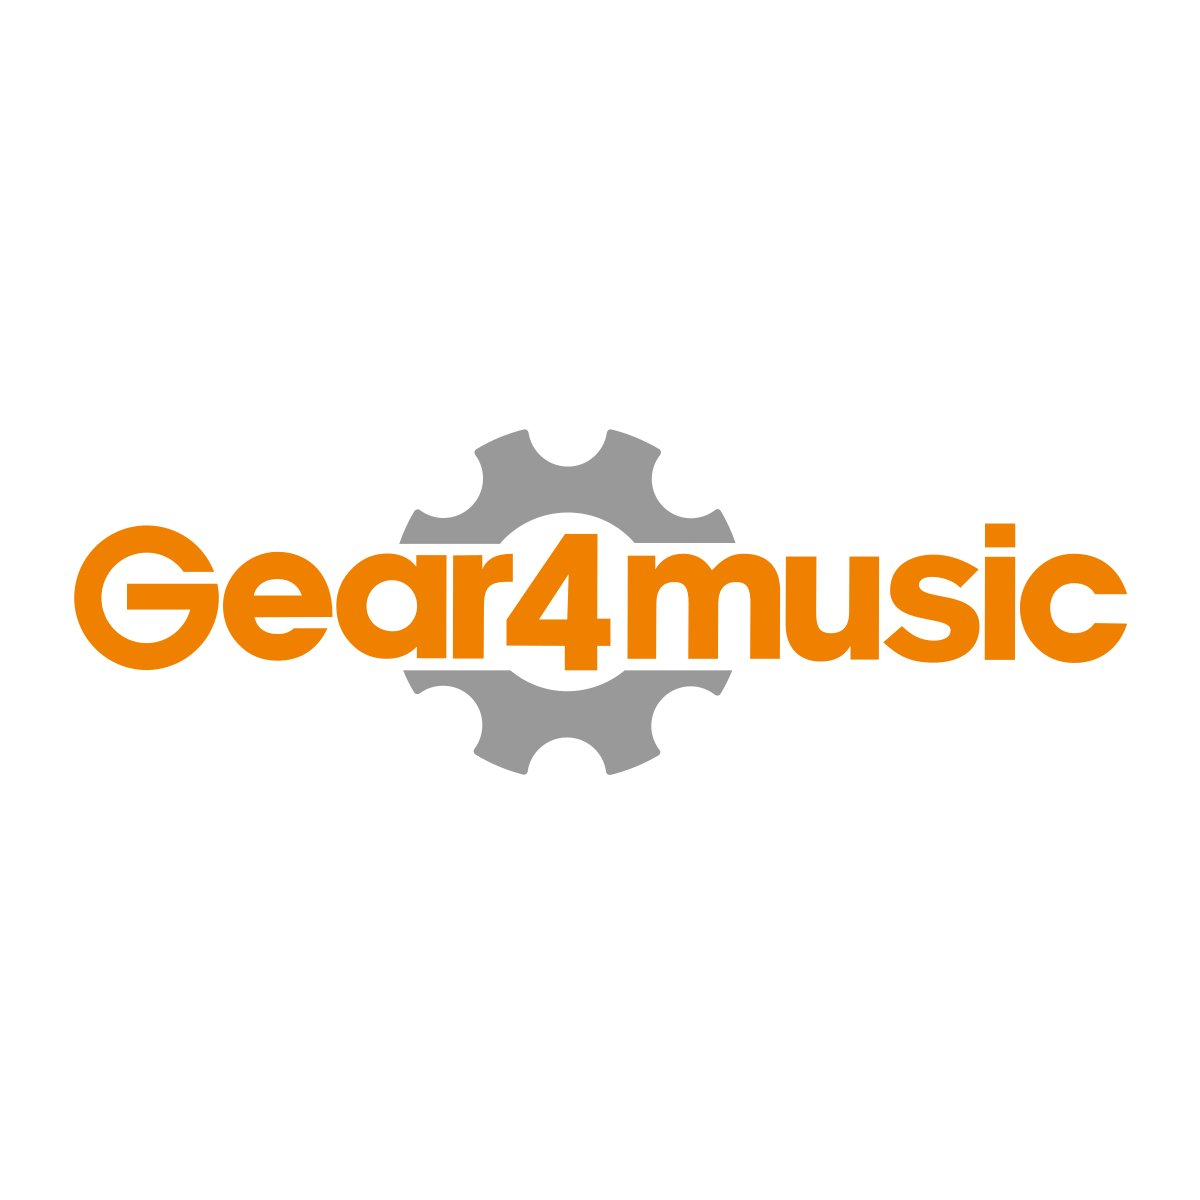 Banc de Clavier/Piano réglable par Gear4music